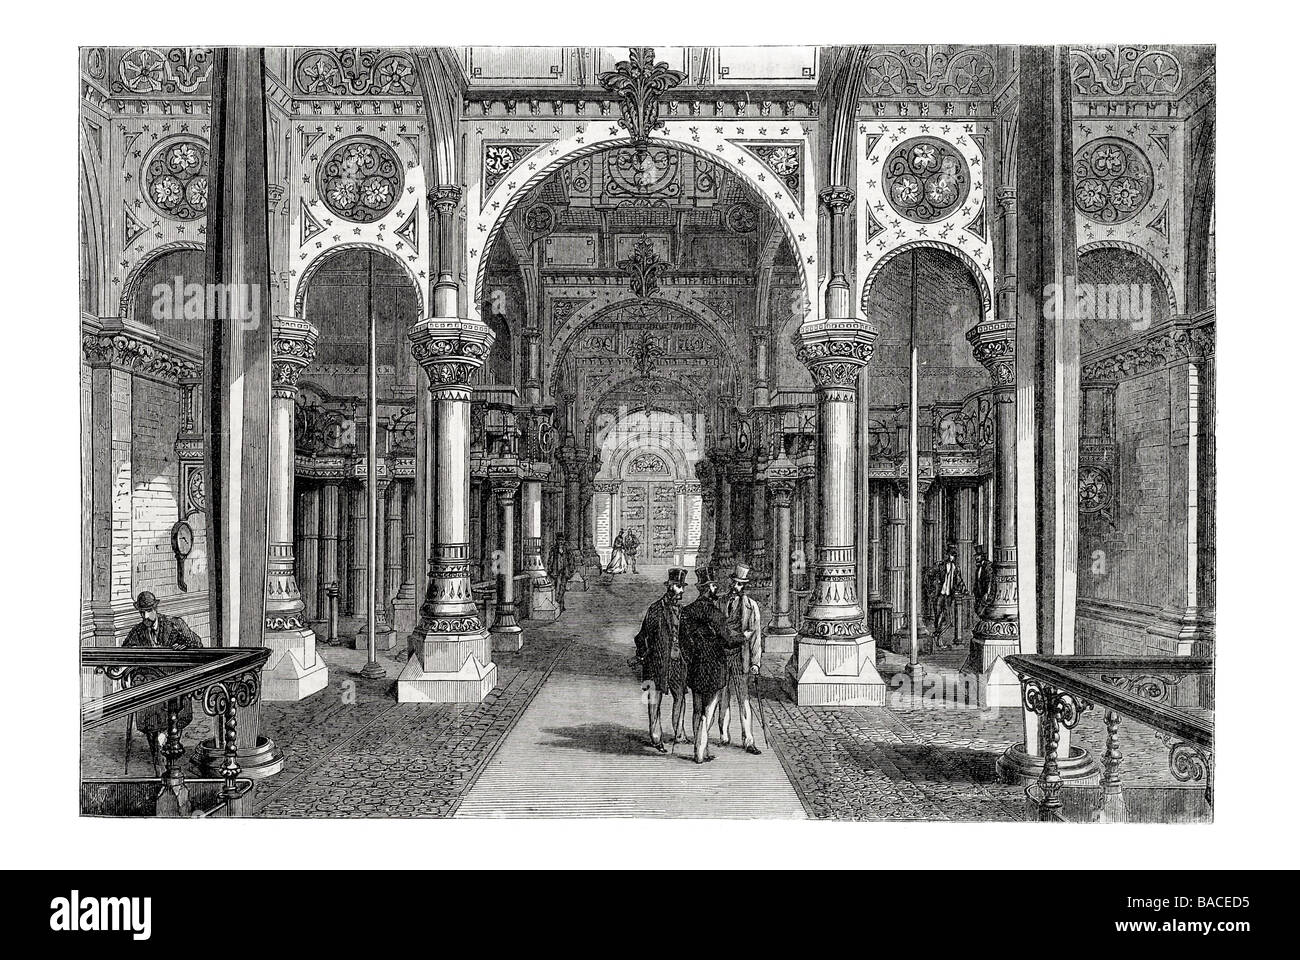 Interior of the Abbey Mills Pumping Station sewerage pumping sewage Joseph Bazalgette - Stock Image